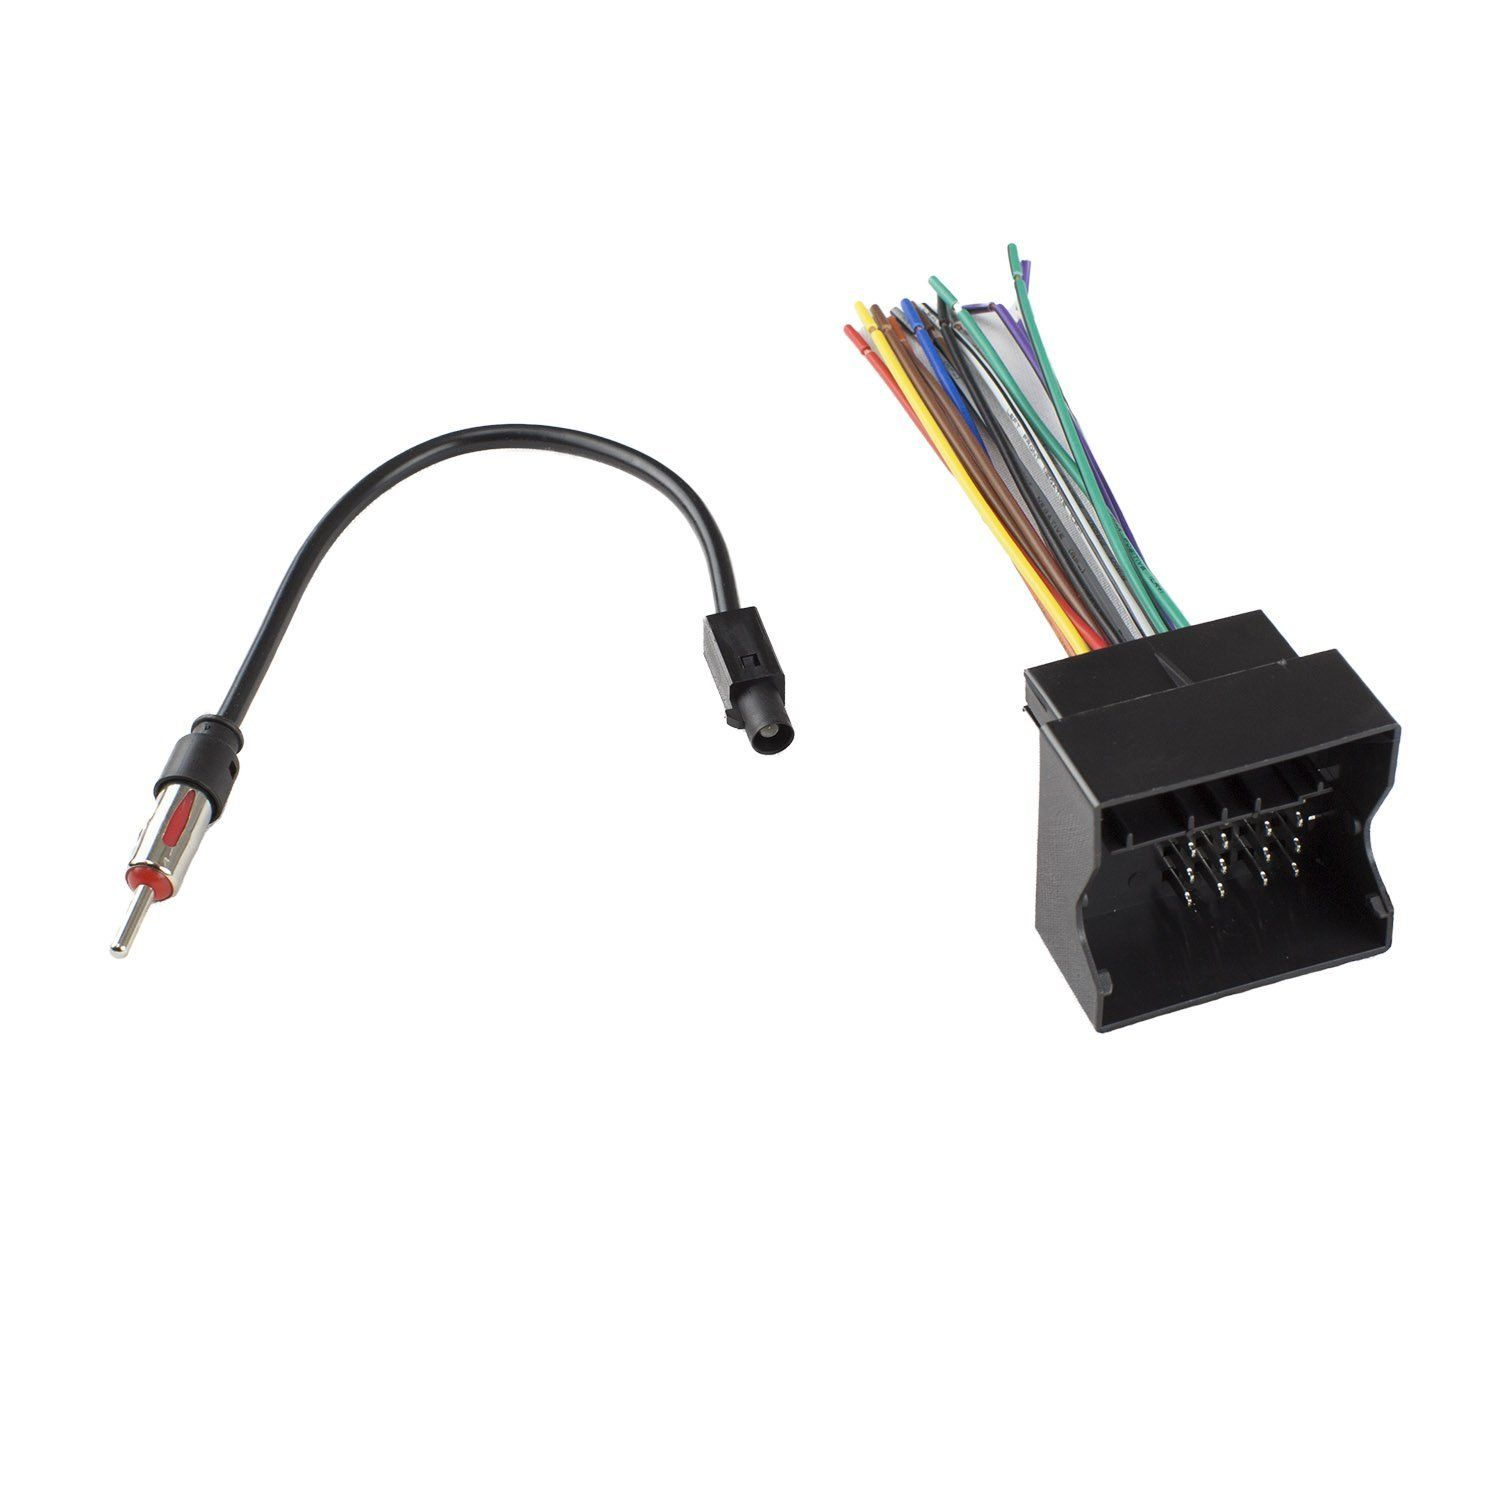 medium resolution of novosonics vwf 1010 vw7 wiring harness for mini cooper package includes vwf 1010 wire harness vw 7 radio antenna adapter connect an aftermarket stereo to